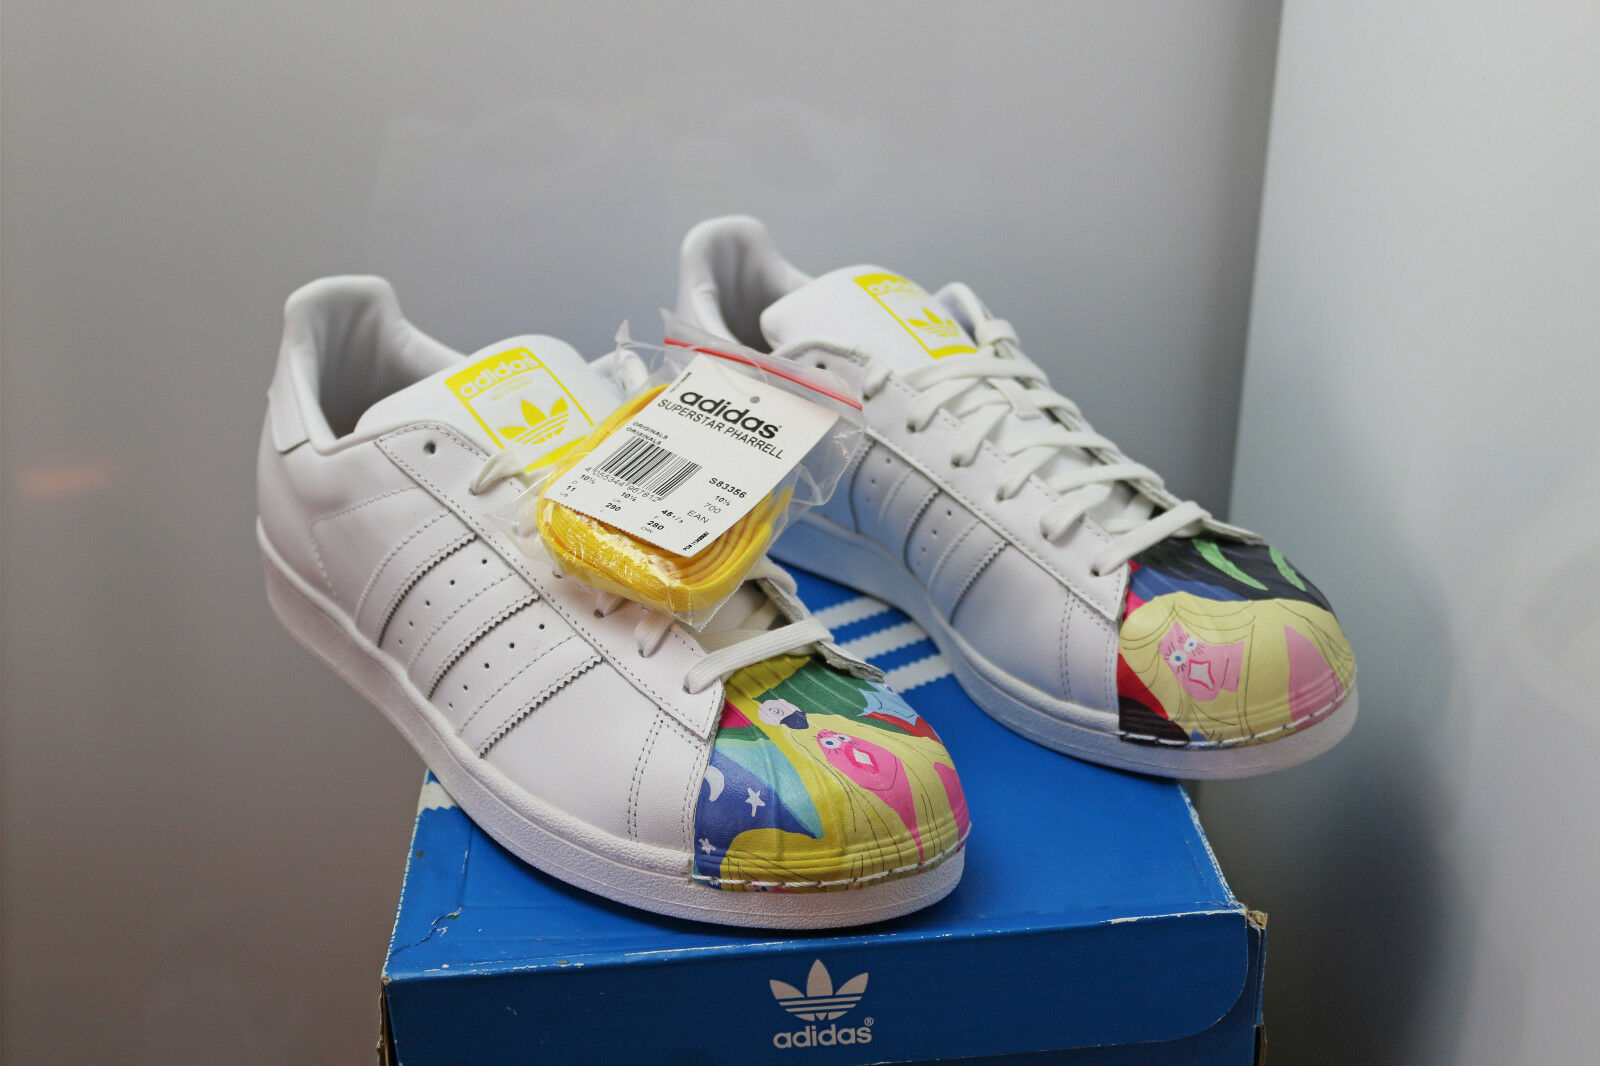 adidas Superstar Pharrell S83356 hommes Leather Shoes blanc Yellow Todd James NEW